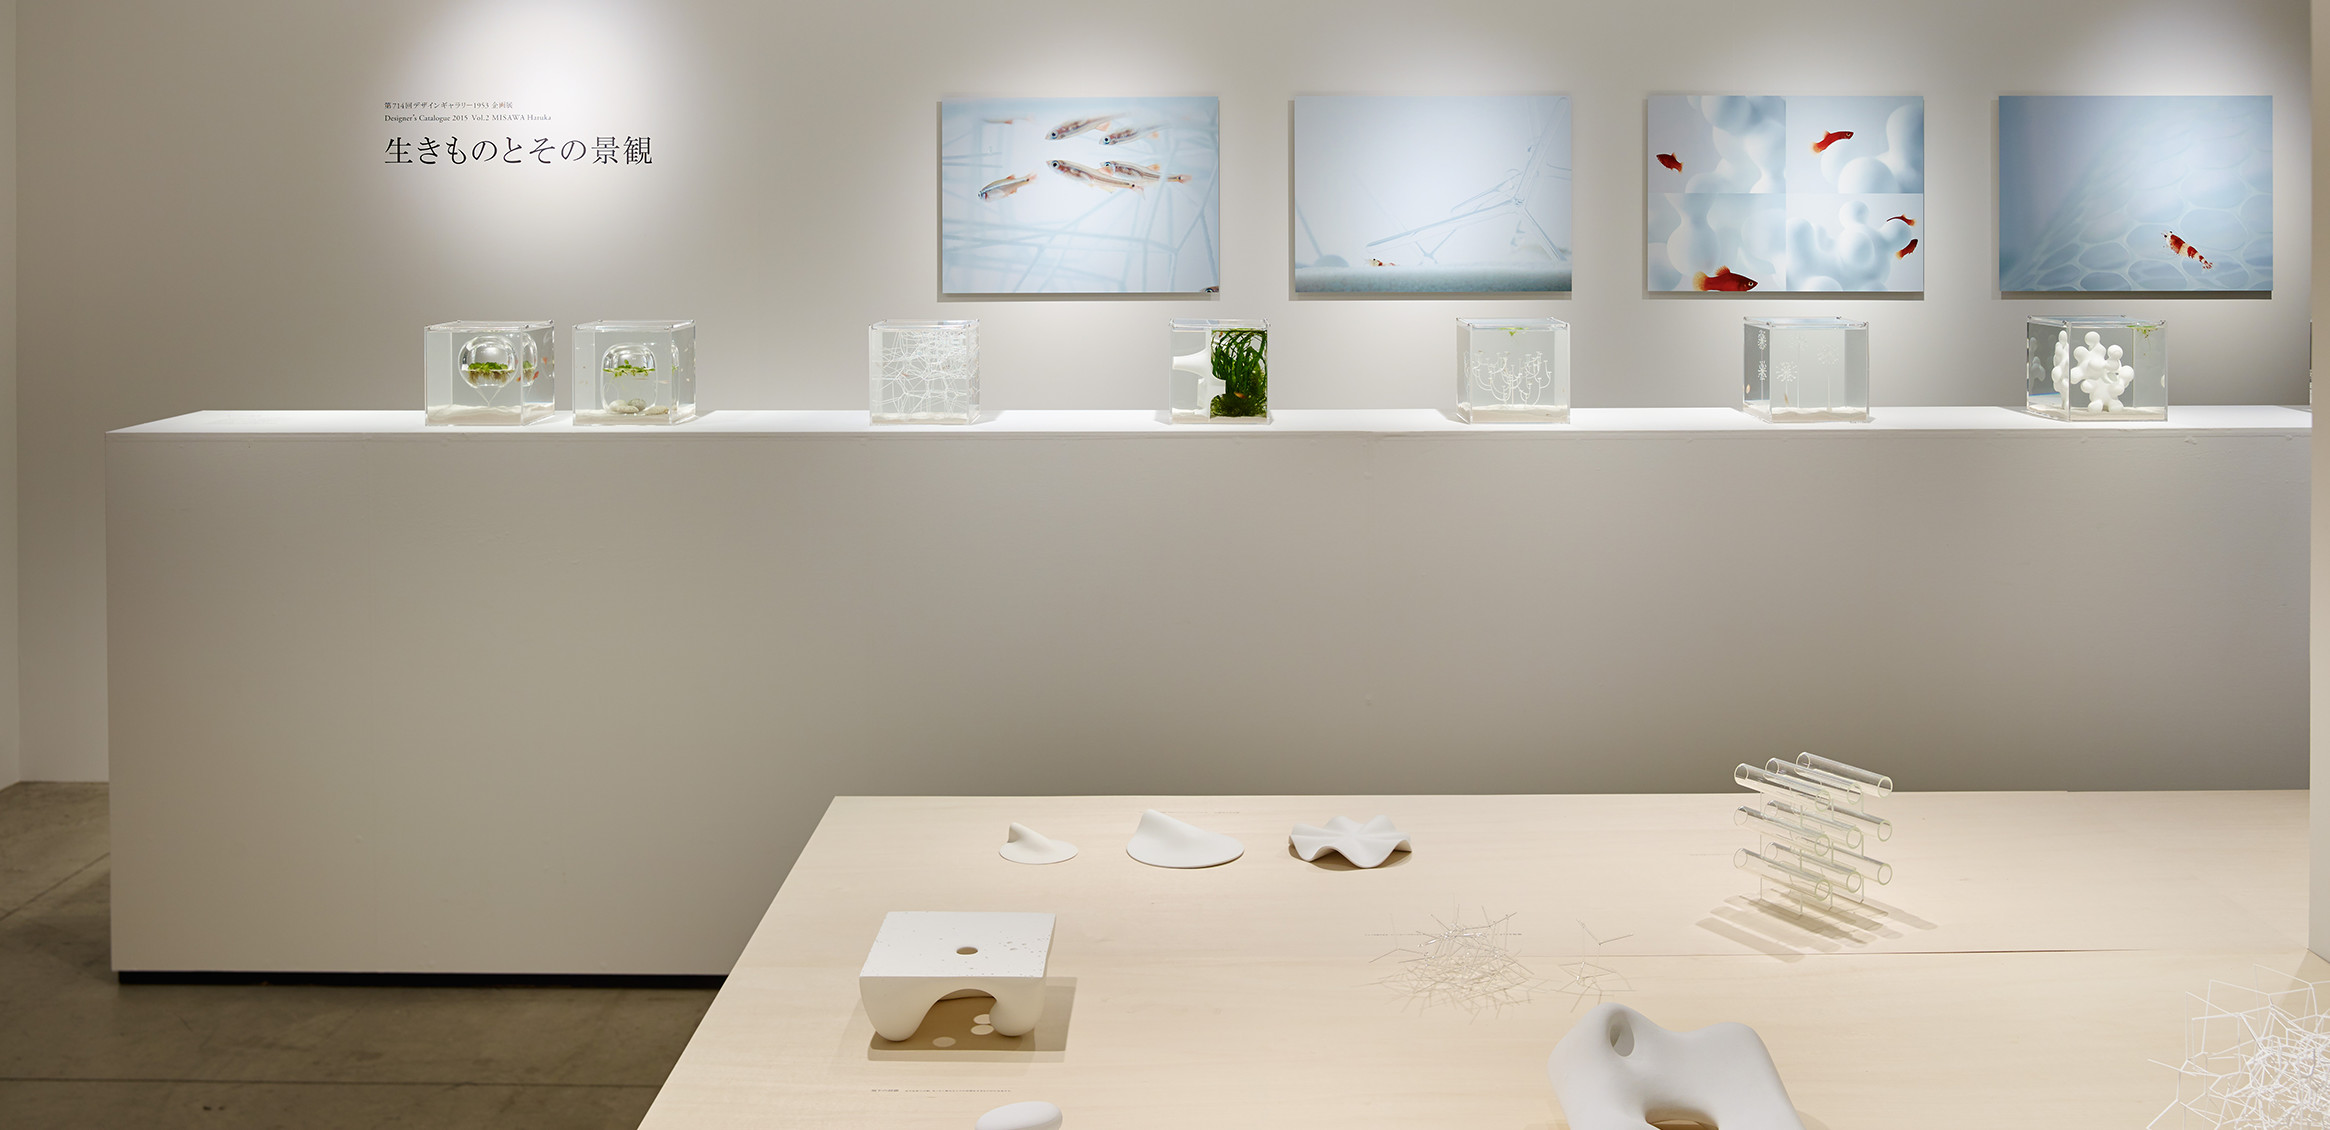 """Living Creatures and Scenery"" exhibition at Design Gallery 19531枚目"